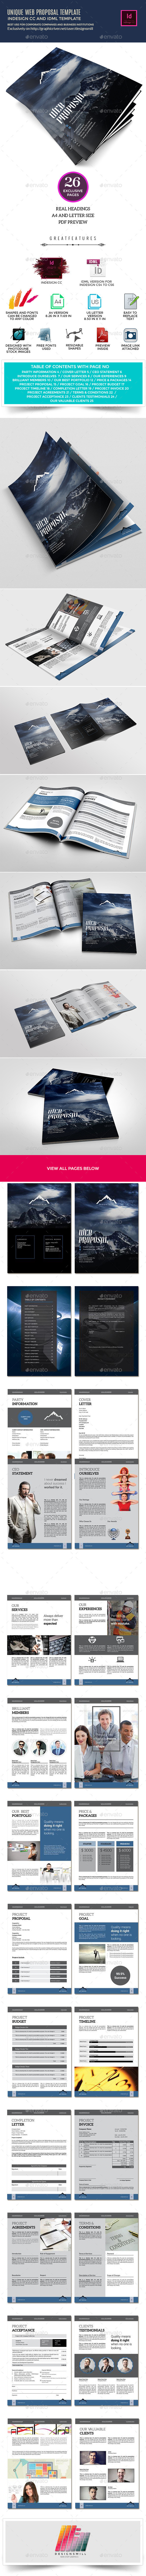 Mountain Web Proposal Template